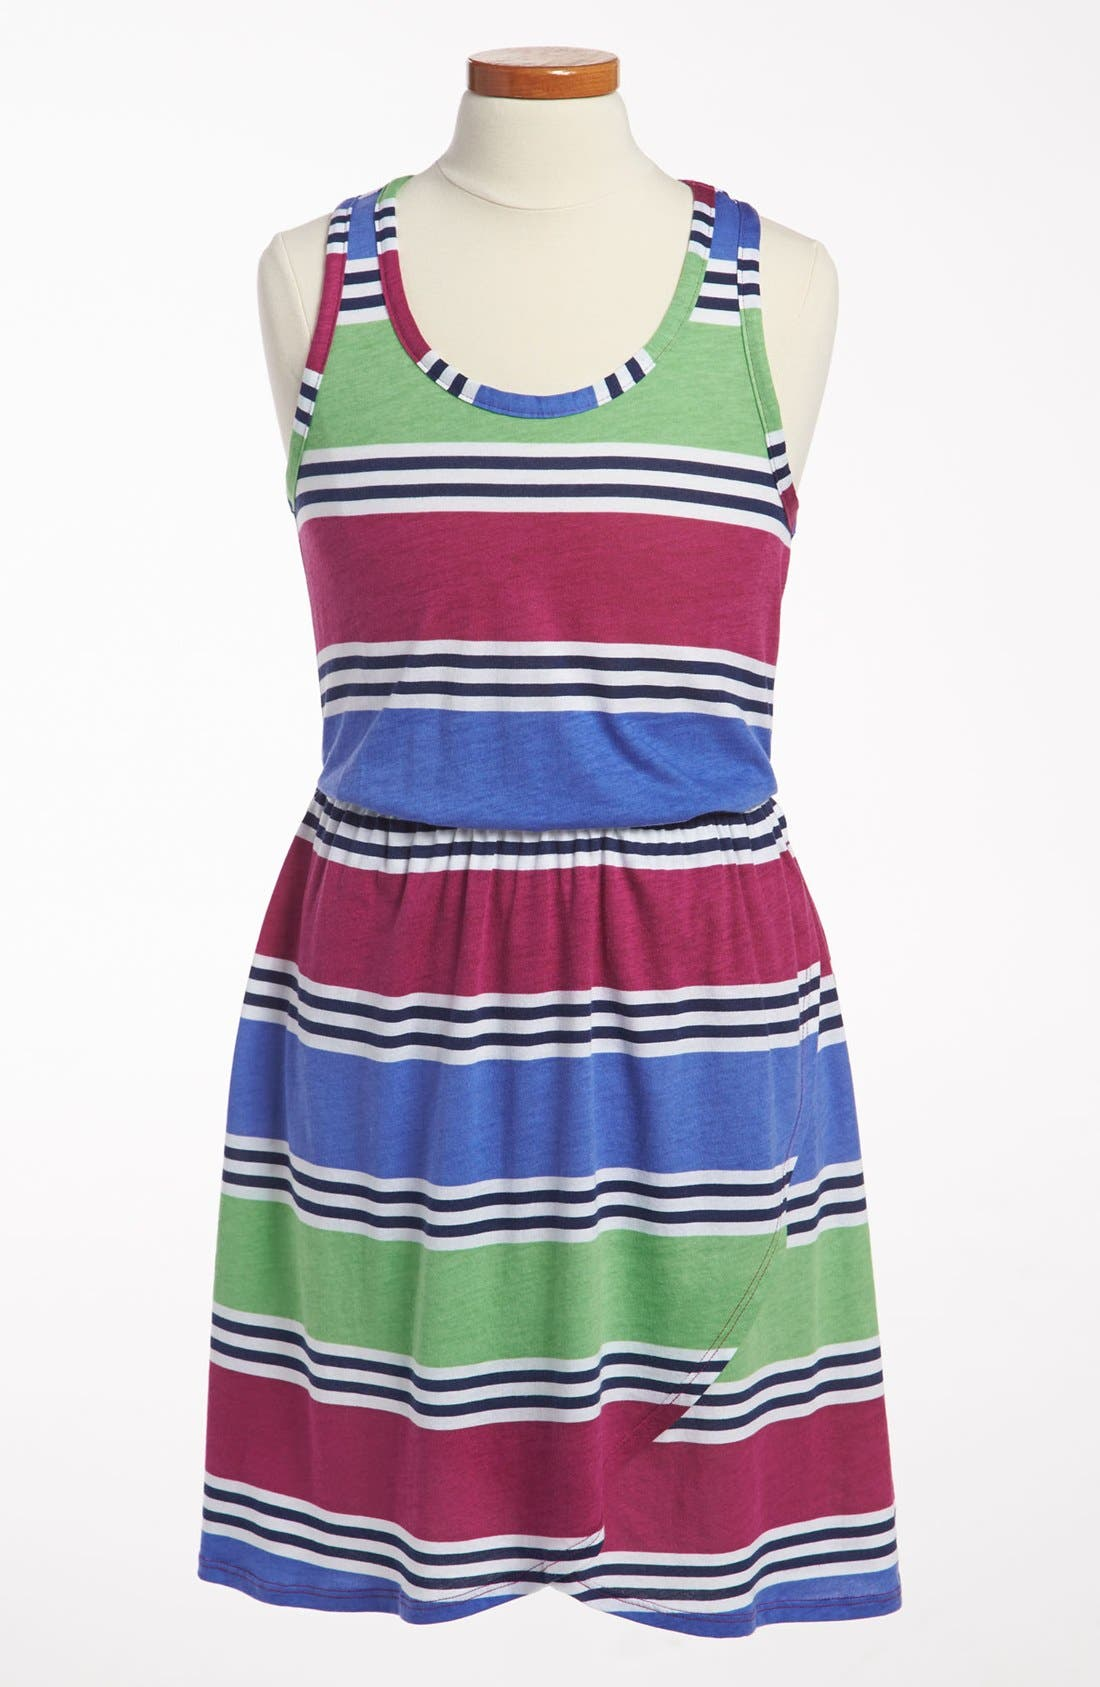 Alternate Image 1 Selected - Splendid 'Cabana Stripe' Dress (Big Girls)